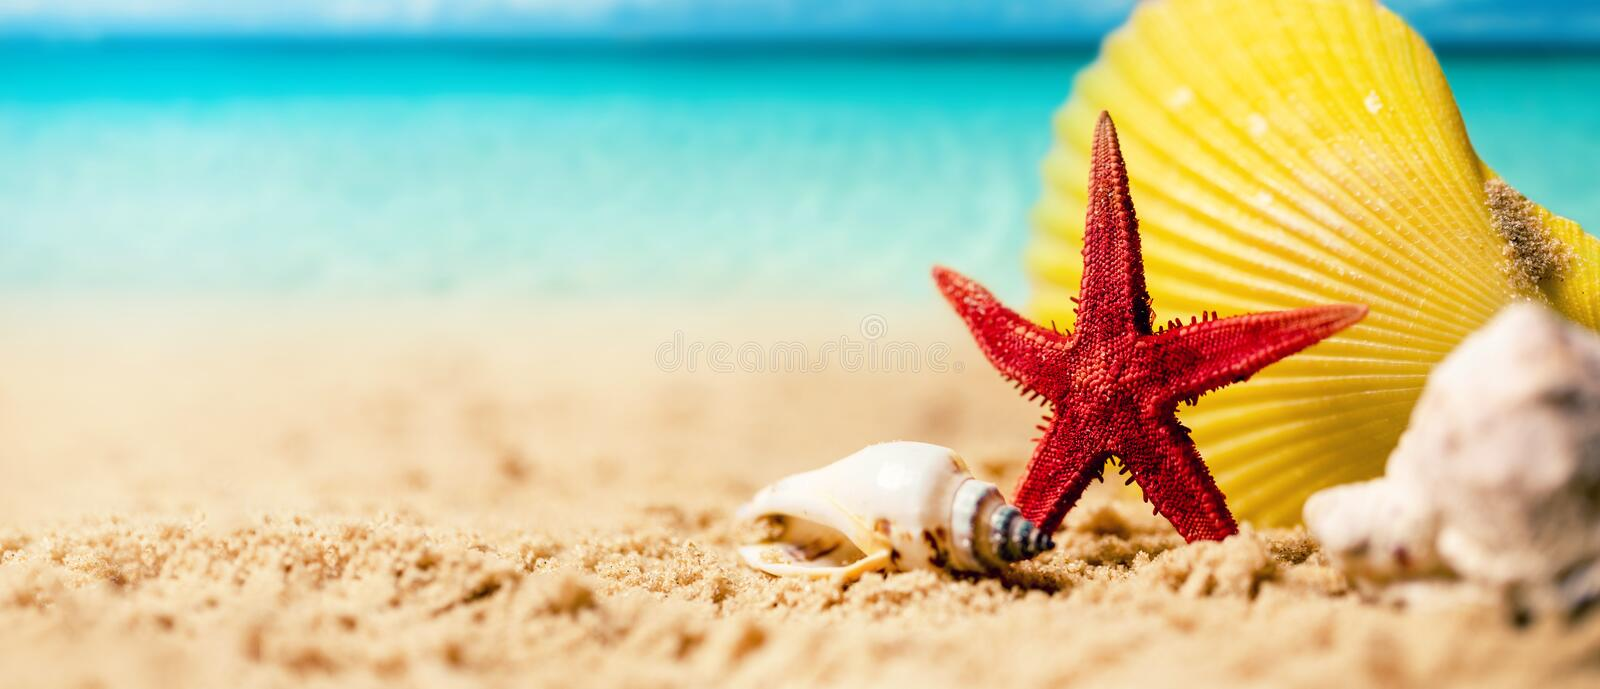 Tropical summer vacations - seashells and starfish on the exotic beach sand with ocean in the background stock photography